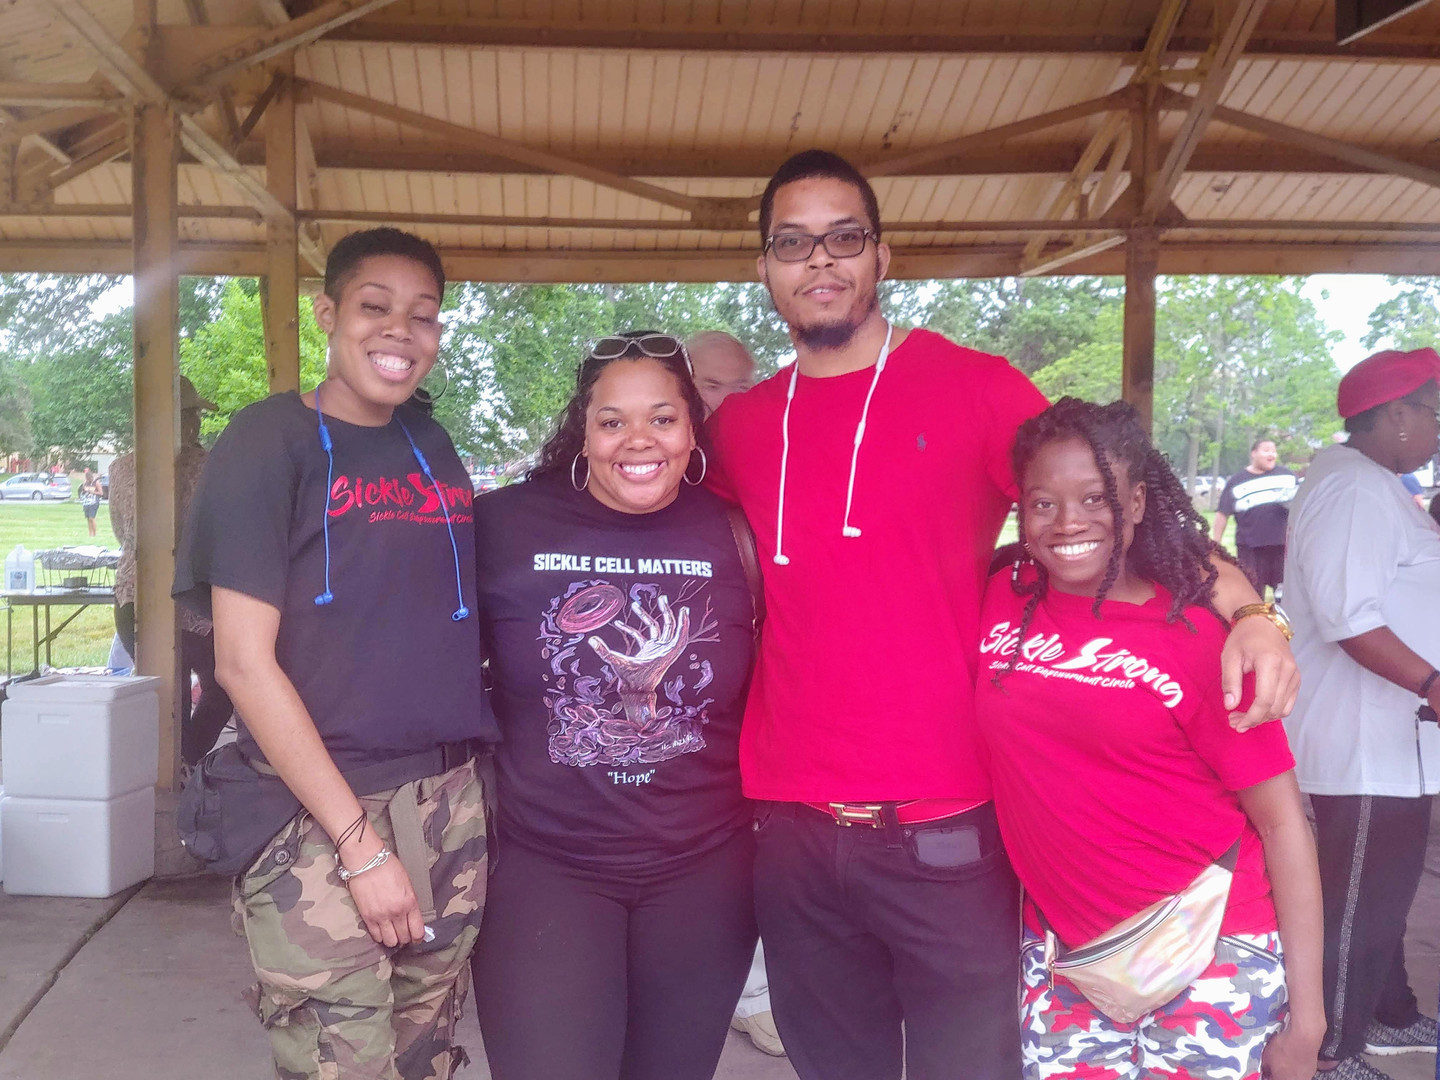 (From left to right) Kristian, Kristal, Dre, and Versetta